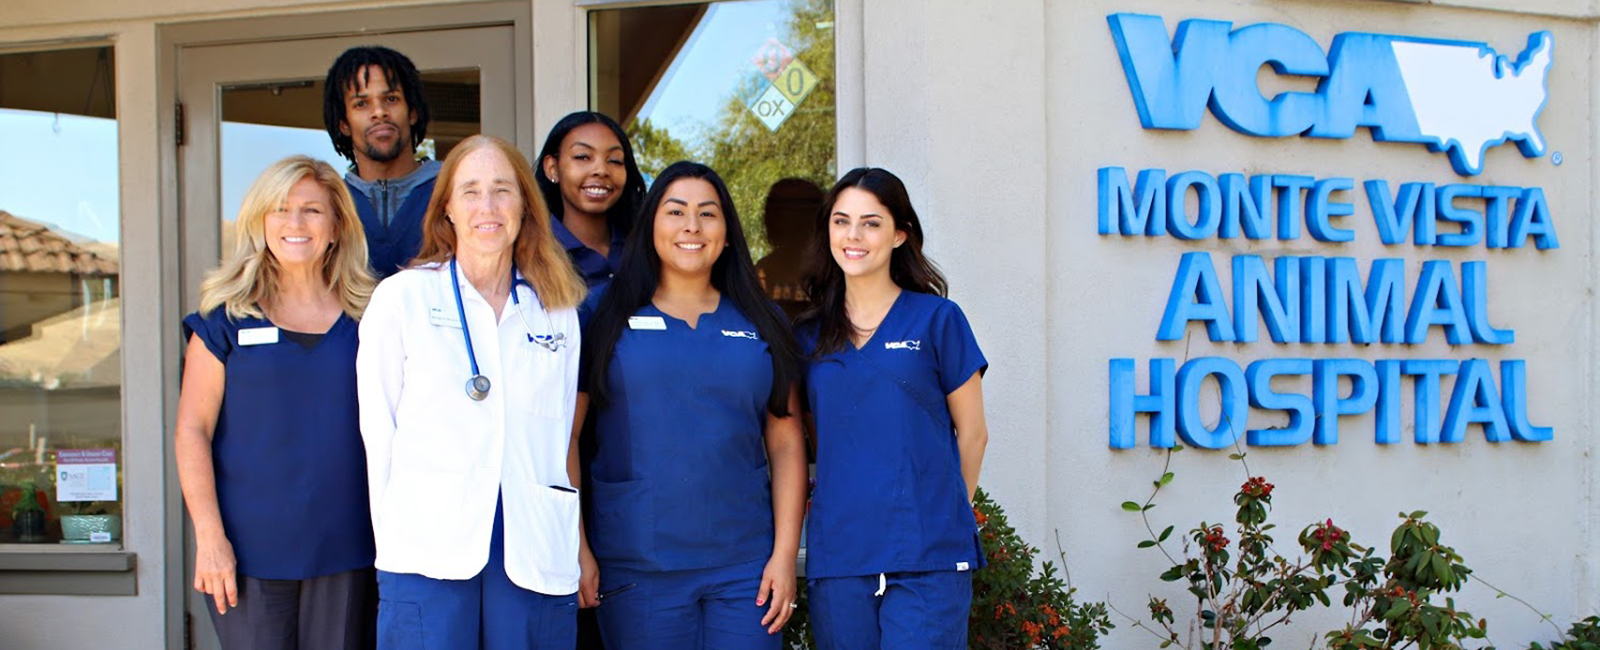 Team Picture of VCA Monte Vista Animal Hospital